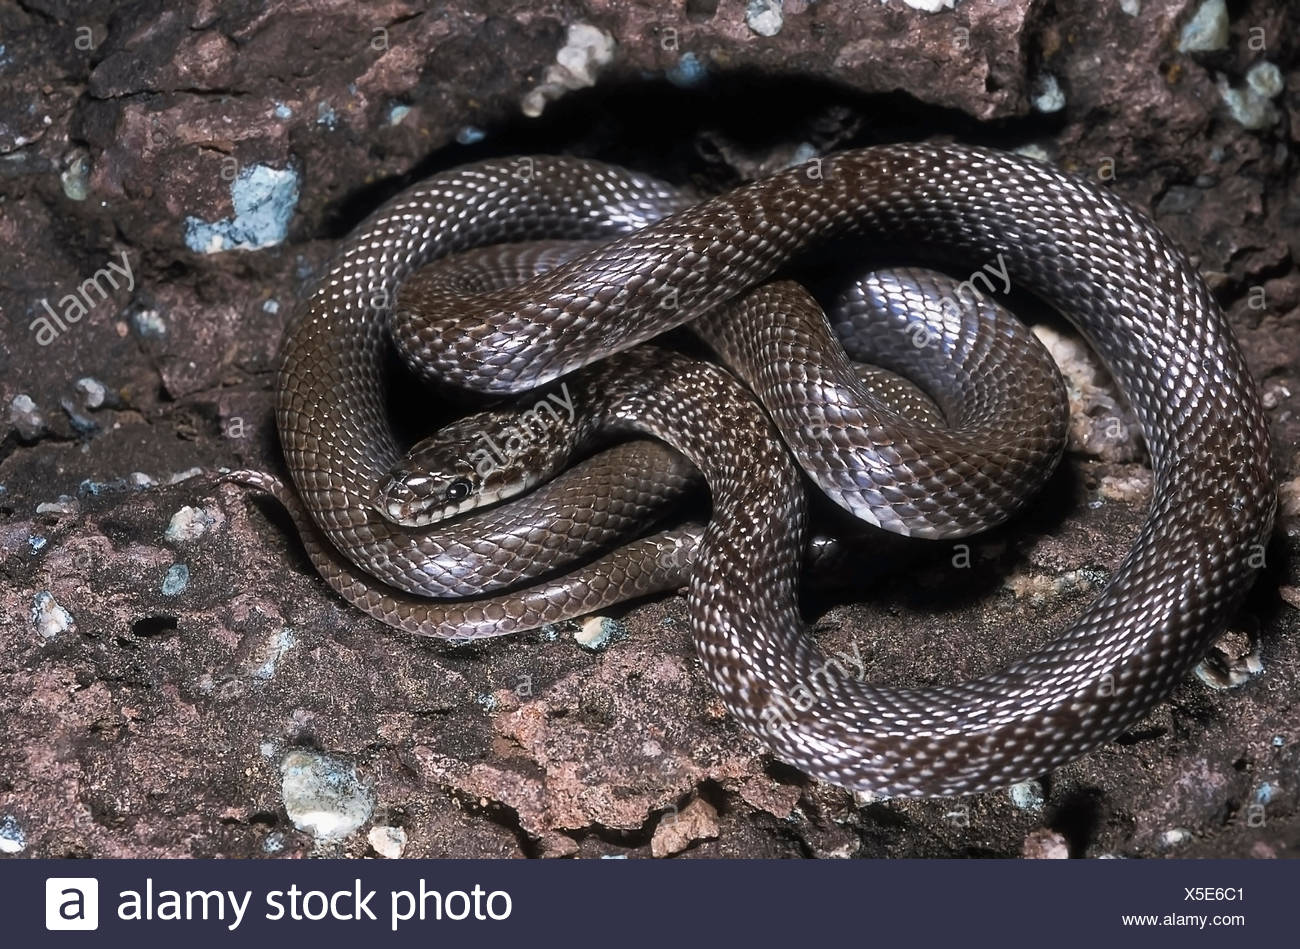 INDIAN SMOOTH SNAKE Coronella brachyura. Specimen from Maharashtra, India. - Stock Image